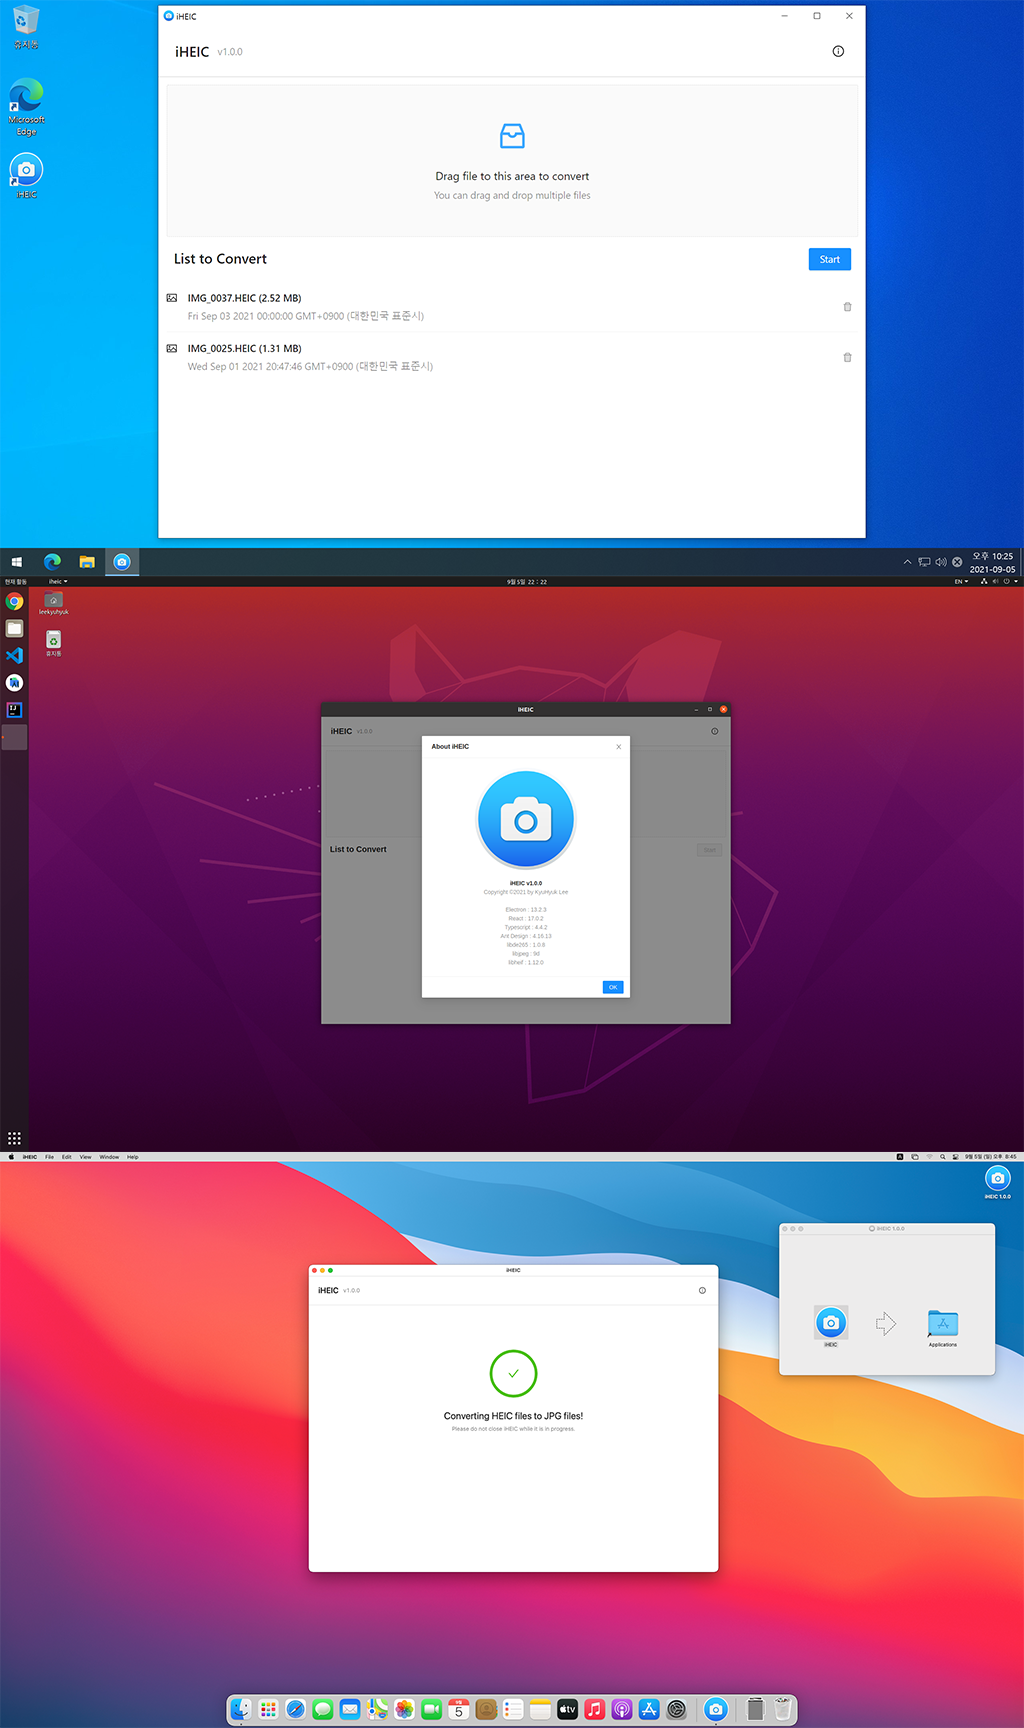 iHEIC running on Windows, Linux and macOS